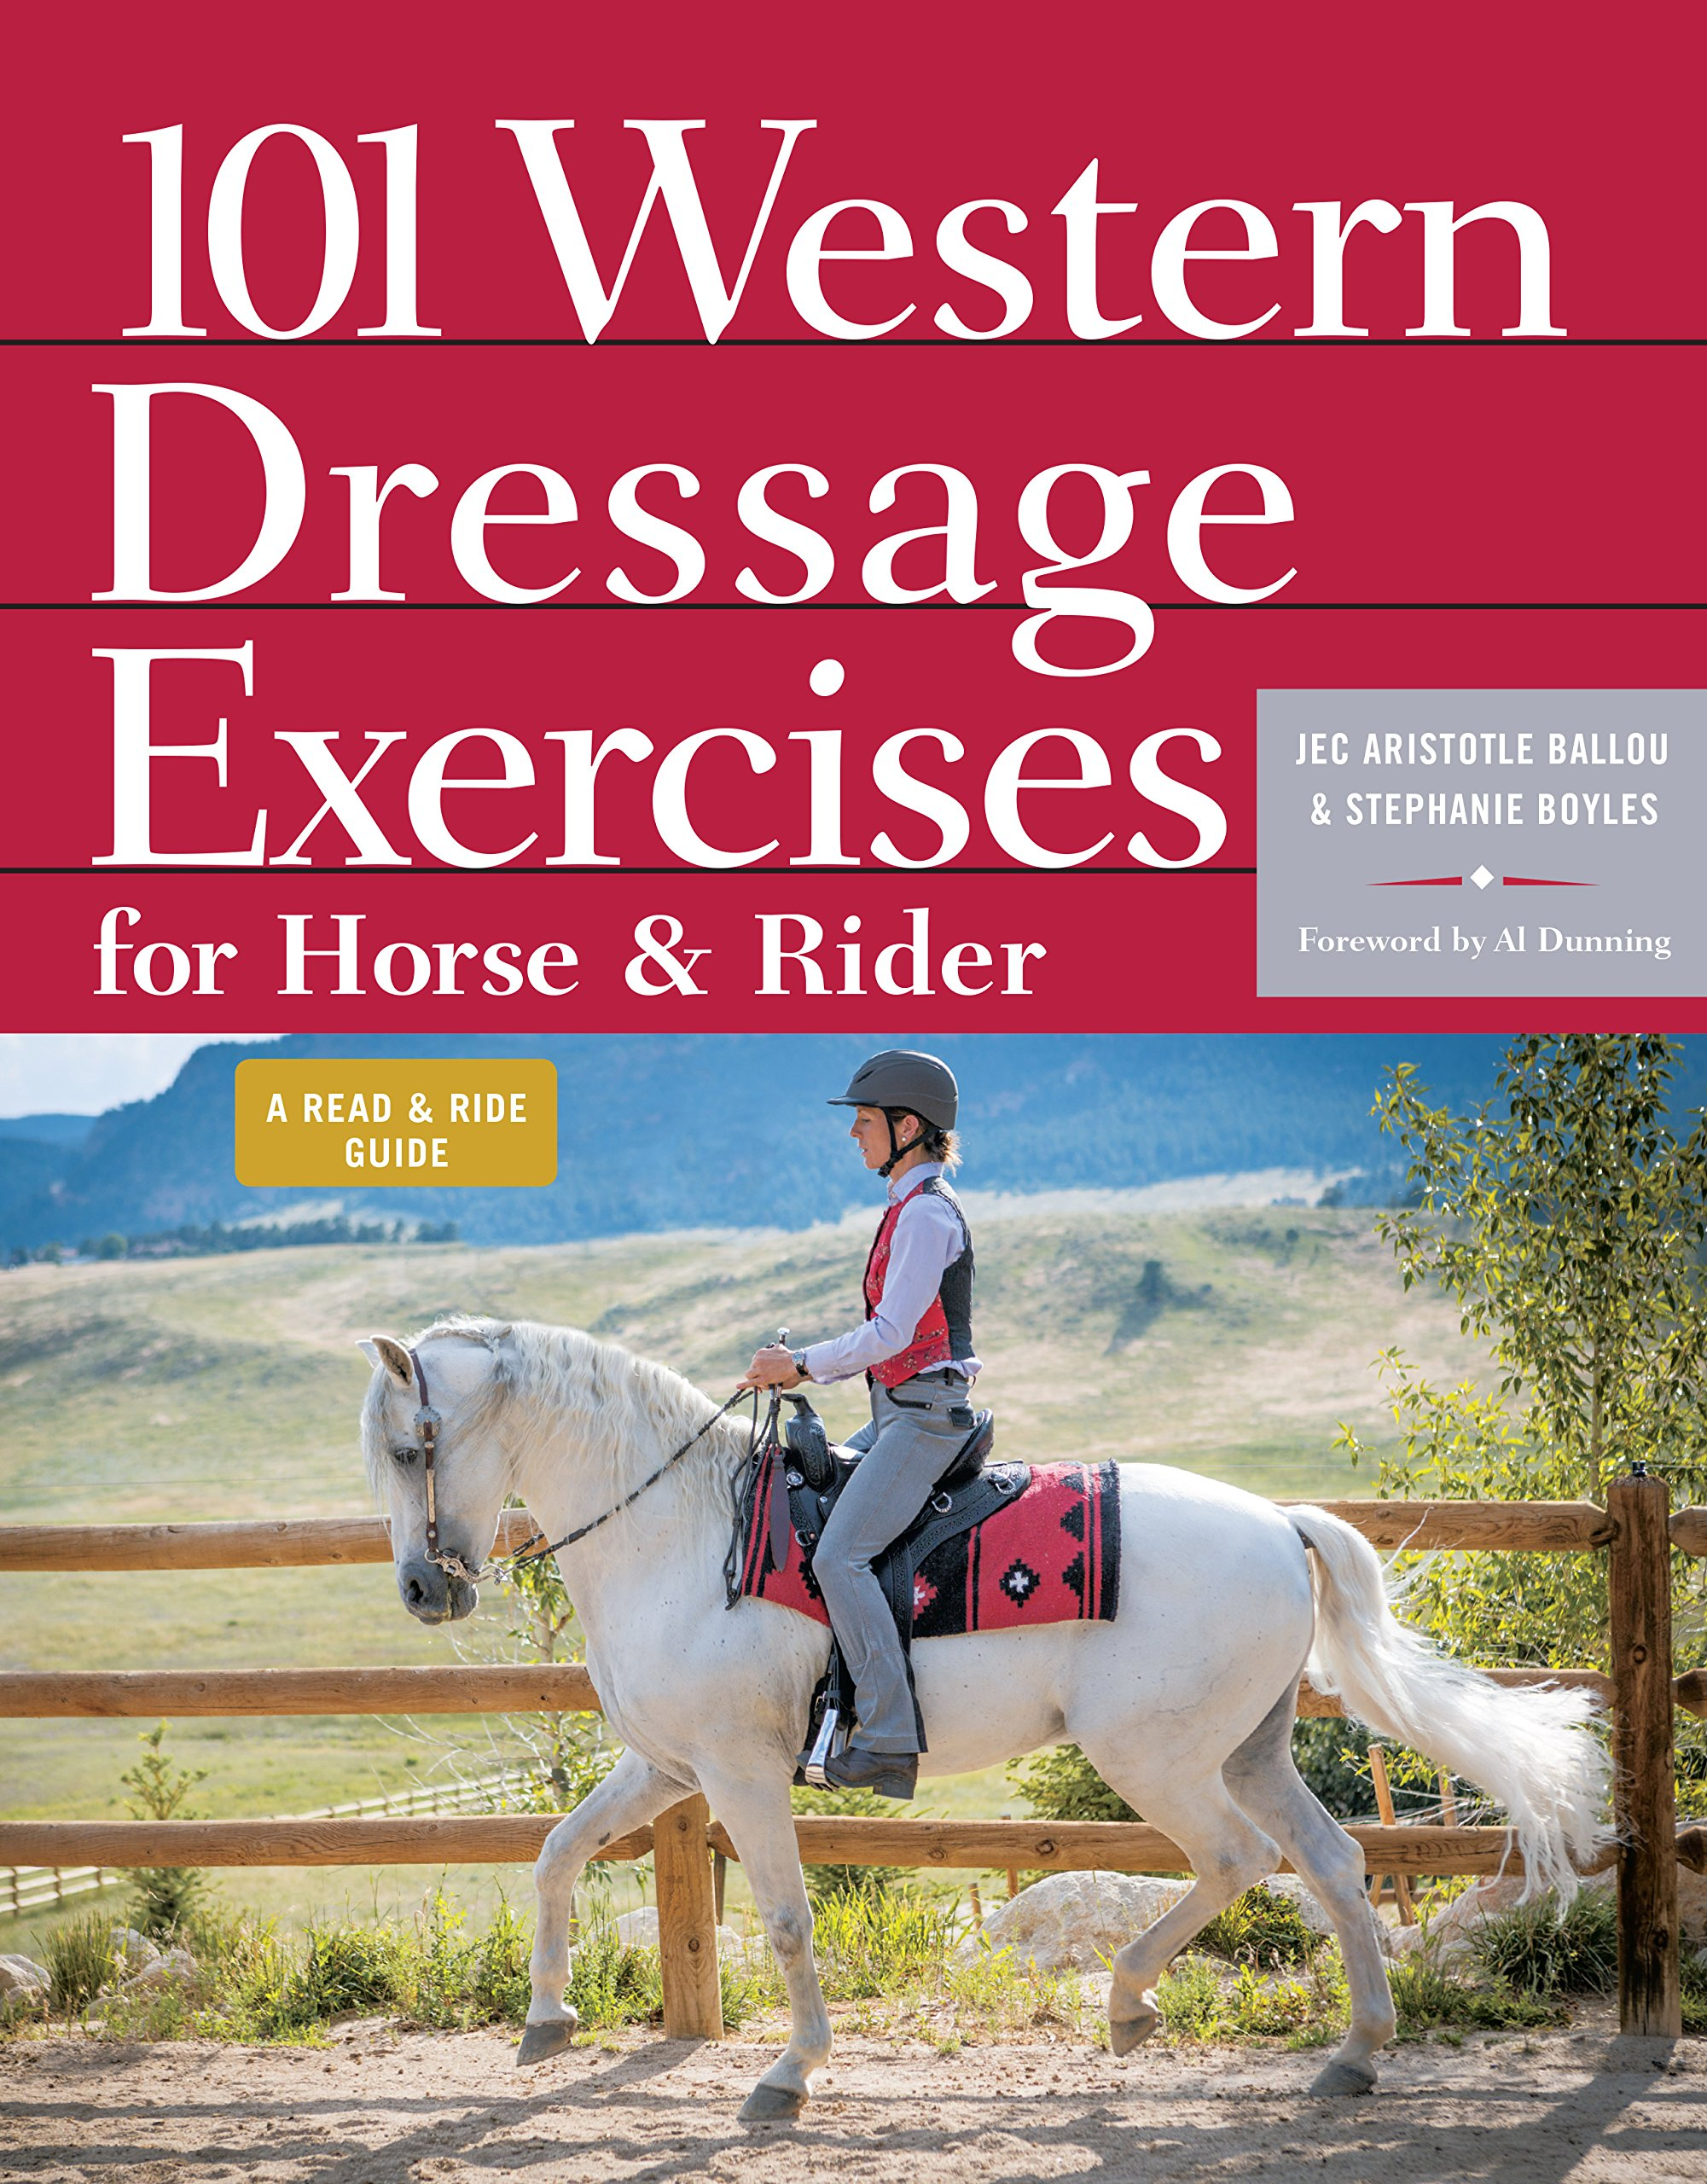 101-western-dressage-exercises-for-horse-rider-read-ride